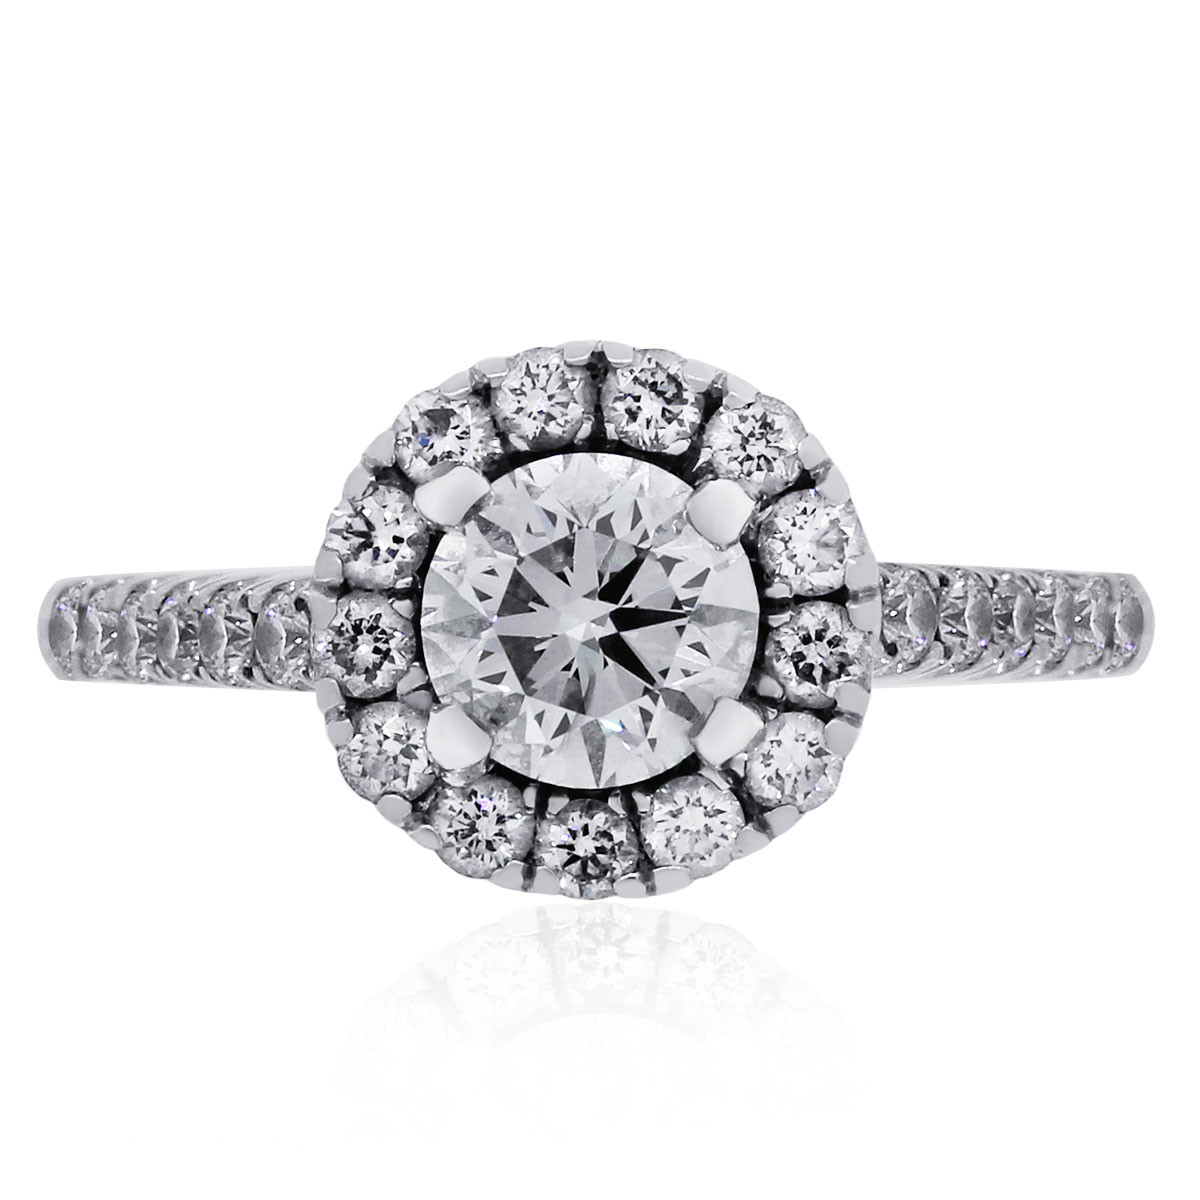 A. Jaffe engagement ring